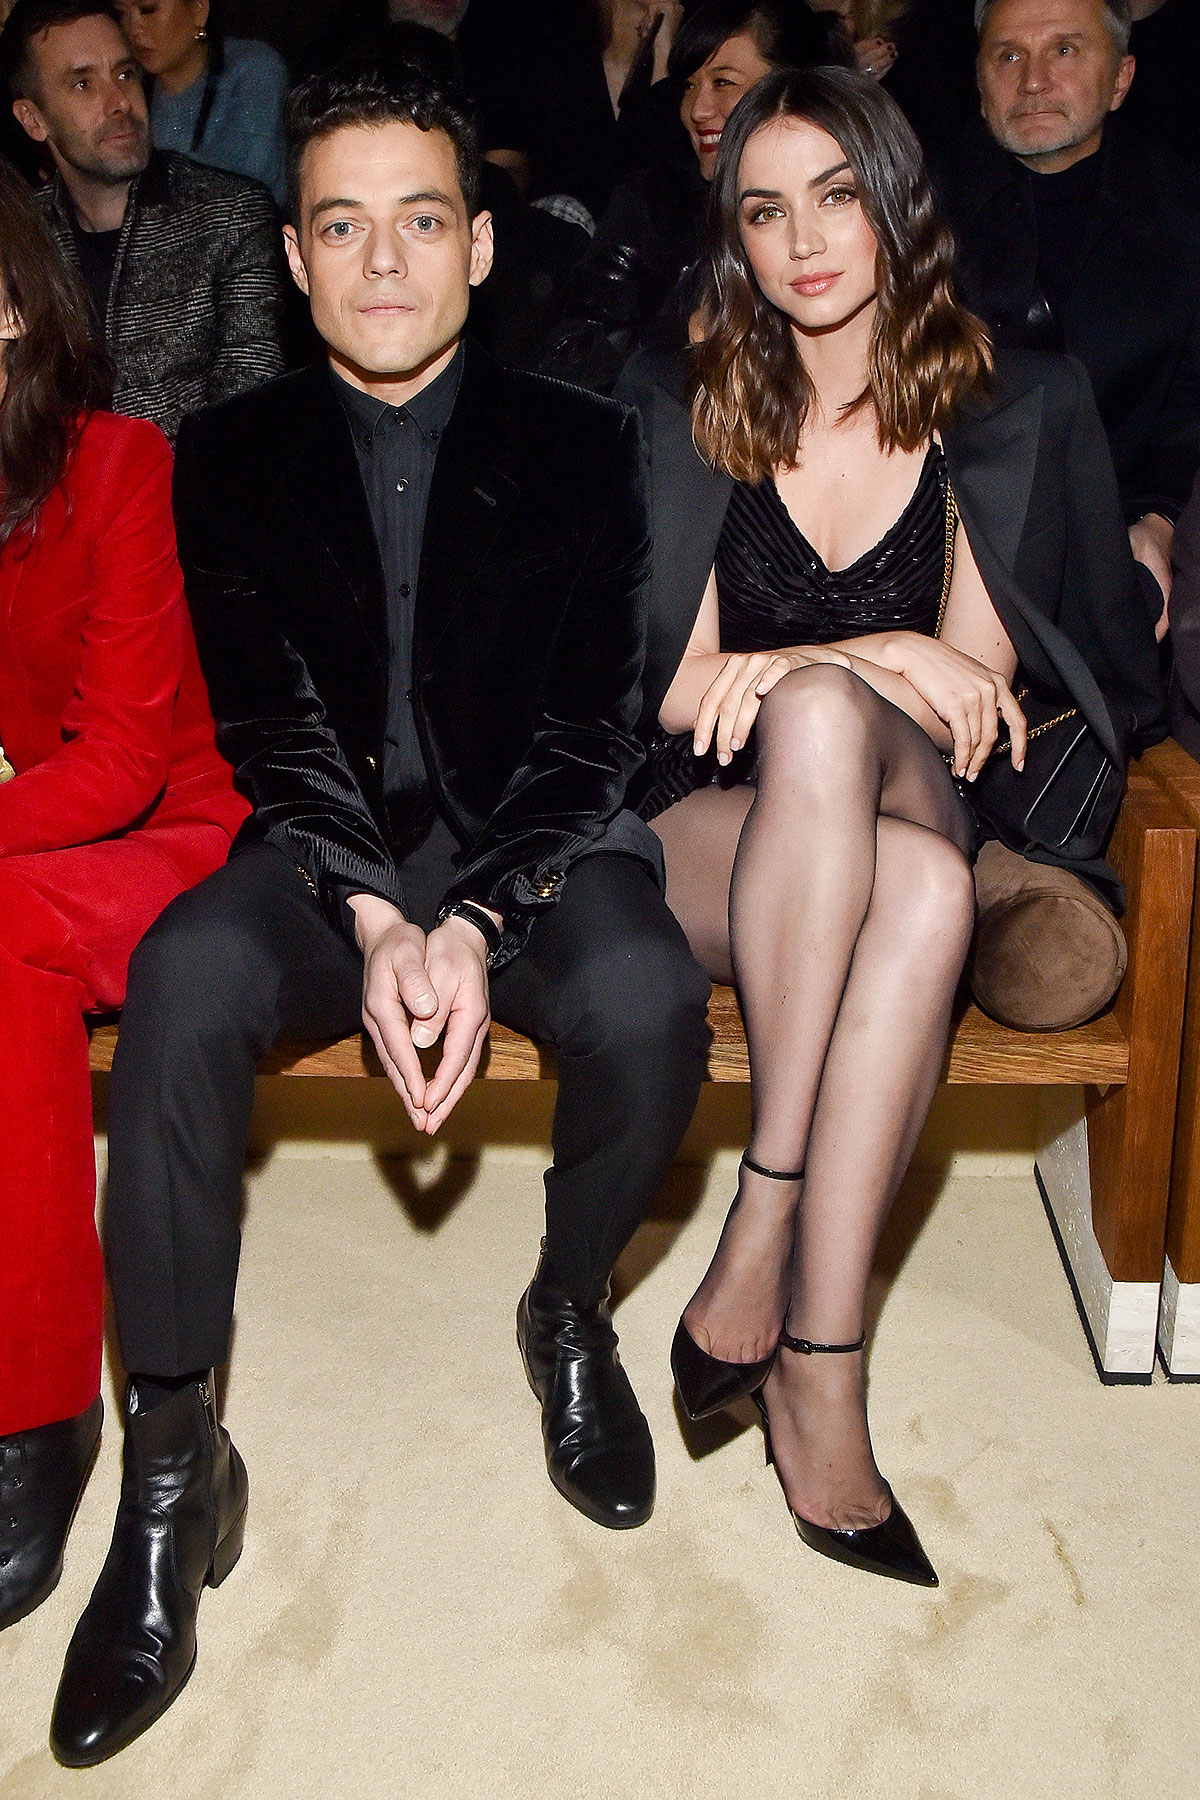 Rami Malek and Ana de Armas attend the Saint Laurent show as part of the Paris Fashion Week Womenswear Fall/Winter 2020/2021 on February 25, 2020 in Paris, France.